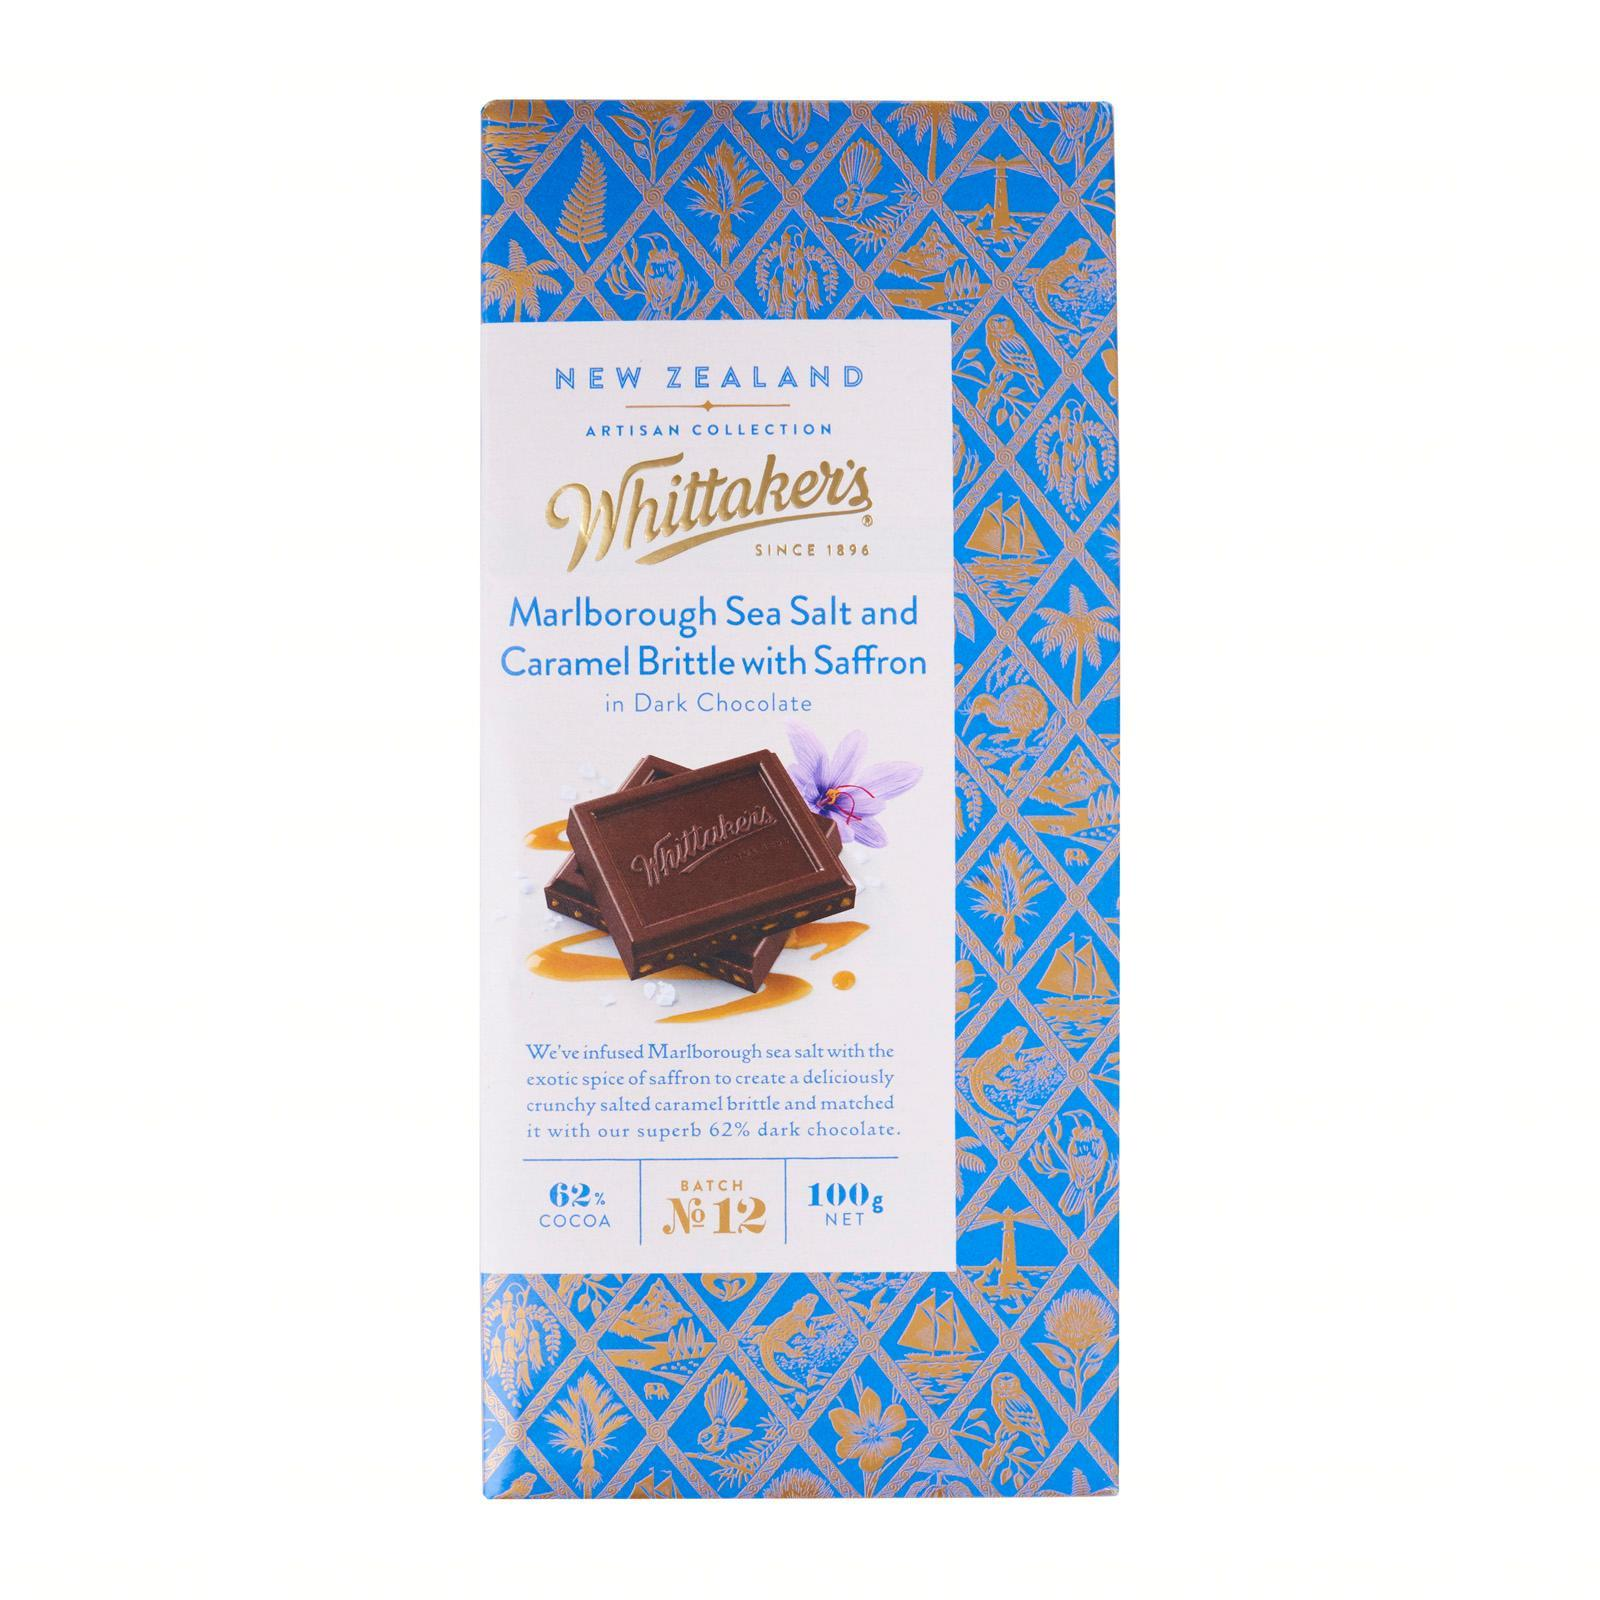 Whittaker's Marlborough Salt And Caramel Brittle Chocolate Artisan Collection